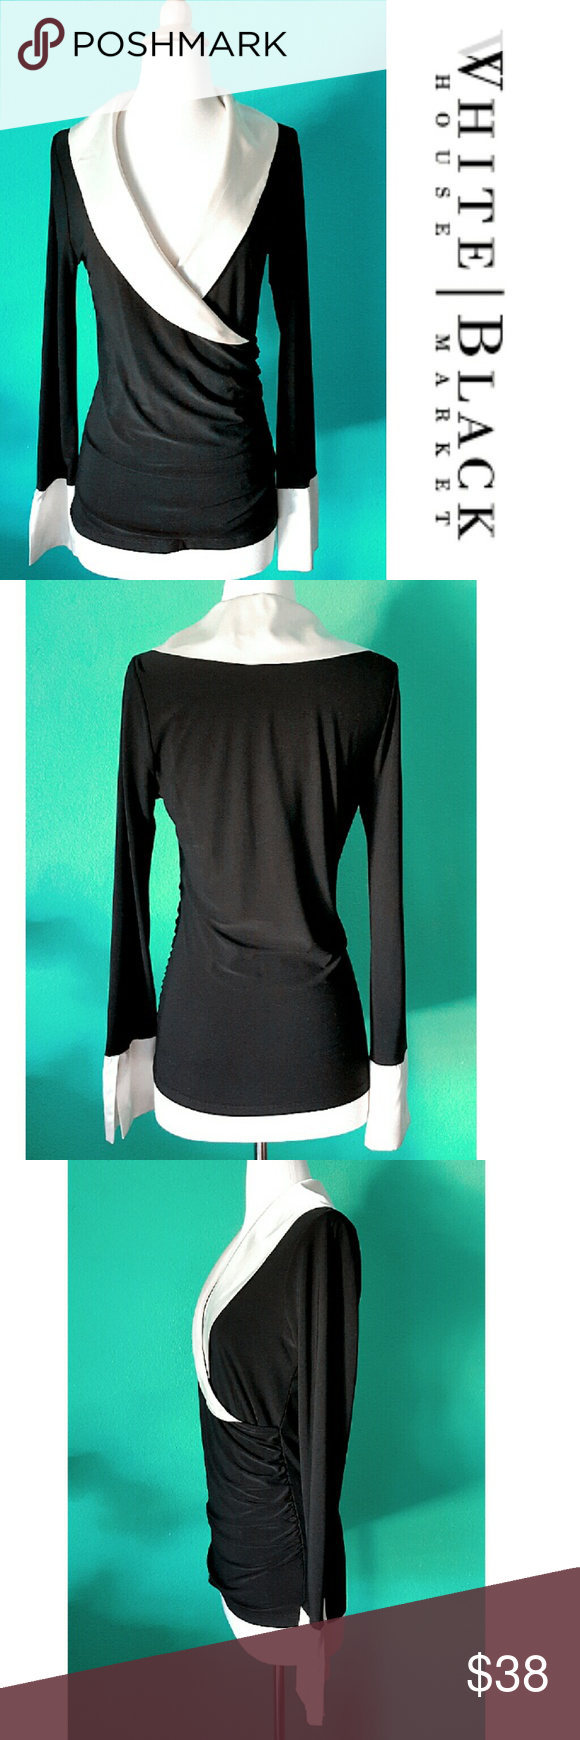 Faux Wrap Blouse Beautiful faux wrap top with silky collar and sleeve caps. Figure fitting and crinkle detail on the side. Classy combination of black and creme color. 92% polyester 8% spandex. In excellent LIKE NEW condition. White House Black Market Tops Blouses